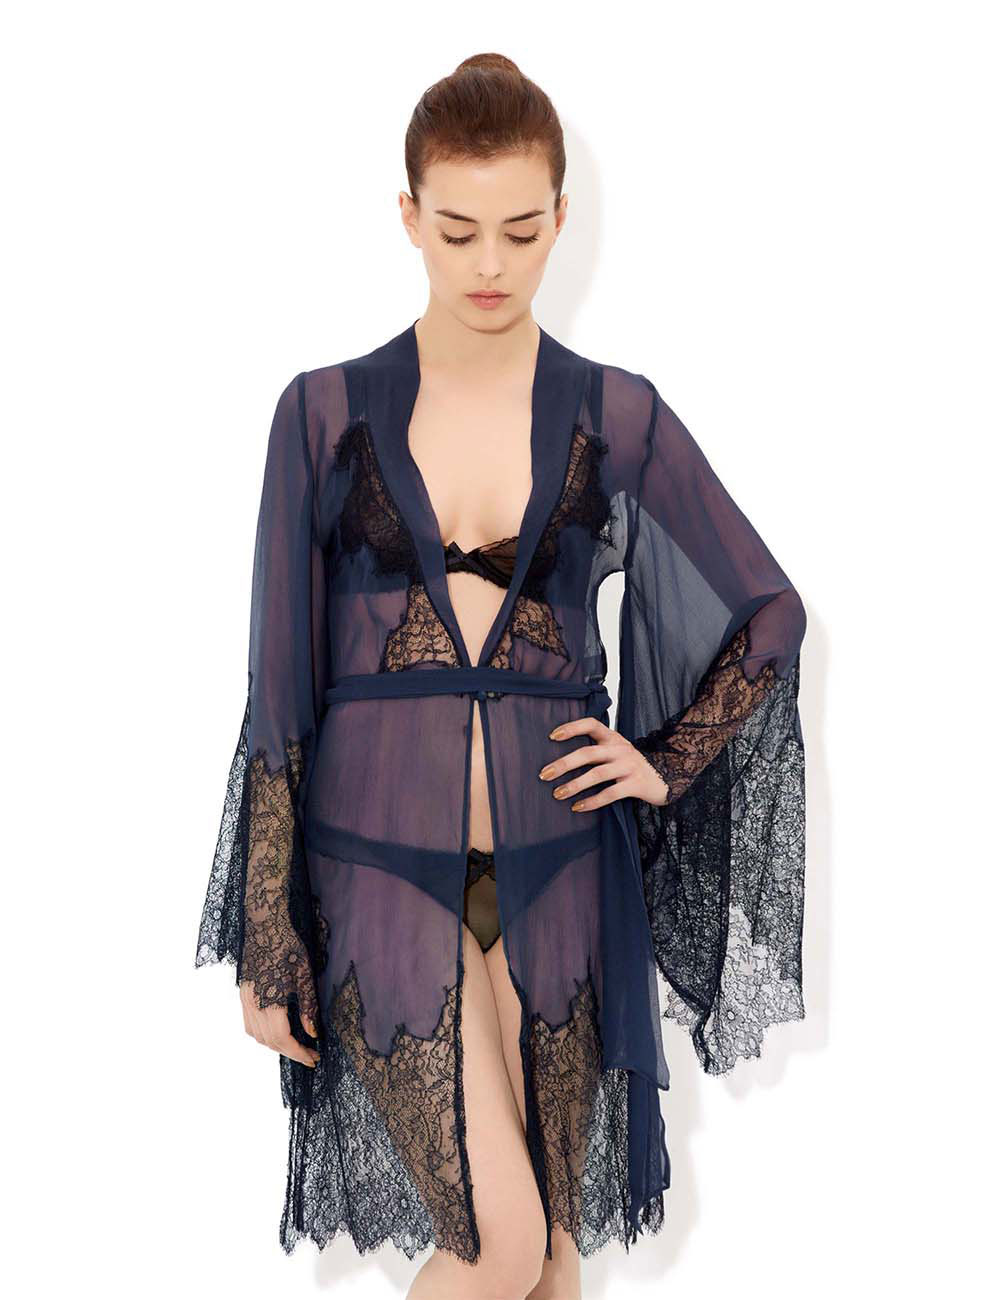 Ornamental Lace Short Robe, £600 вместо  £1,200